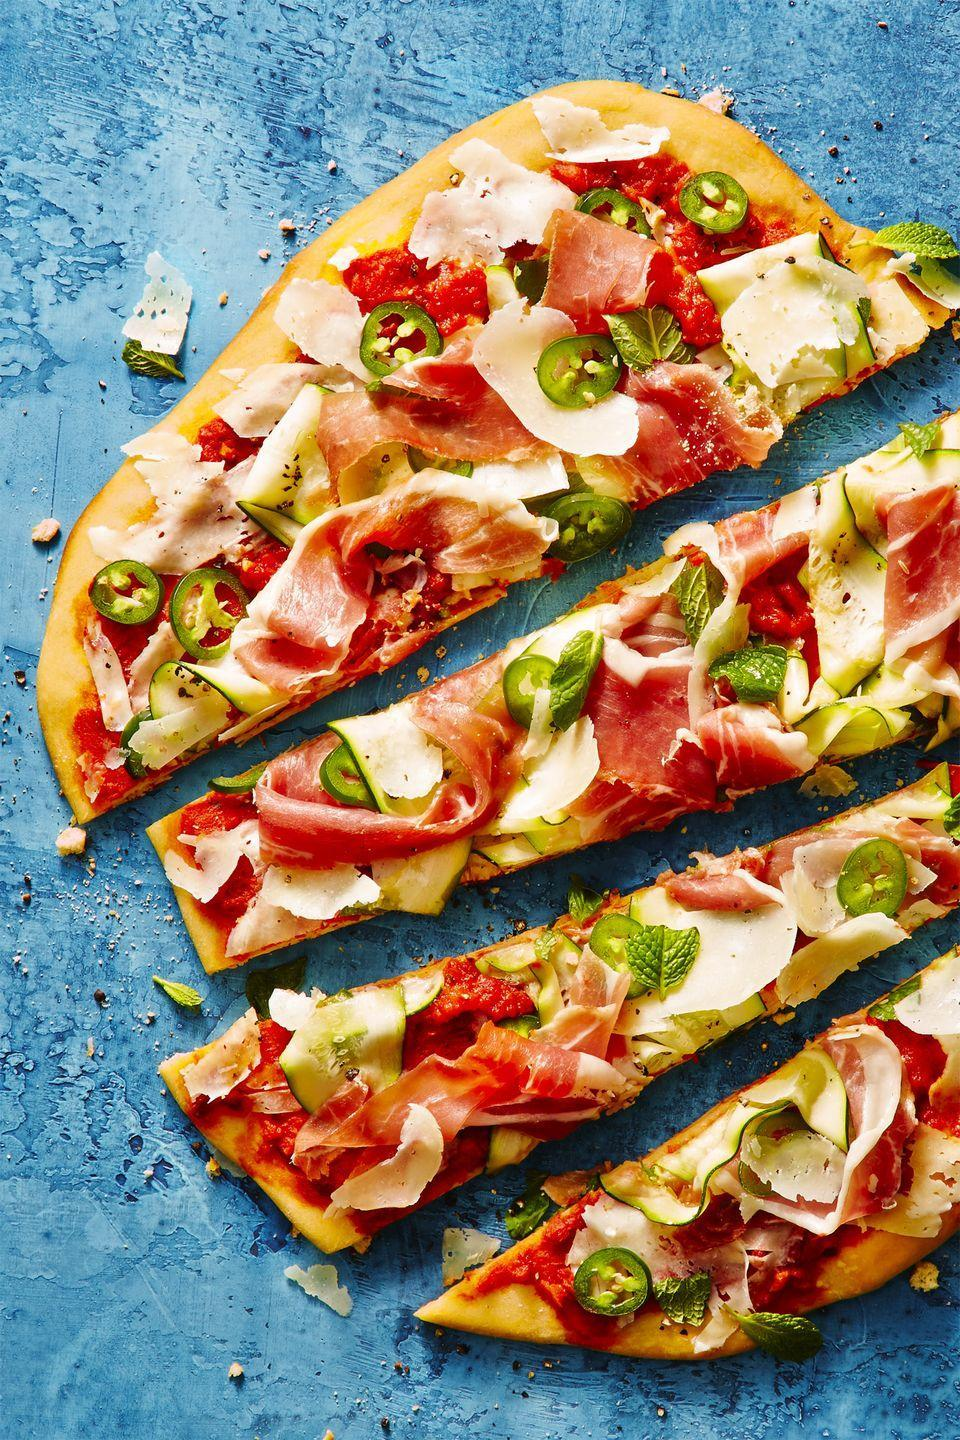 """<p>This pizza, topped with salty ham and fresh veg, simply looks like summer (and tastes like it, too). </p><p><a href=""""https://www.goodhousekeeping.com/food-recipes/a44186/shaved-zucchini-prosciutto-grilled-pizza-recipe/"""" rel=""""nofollow noopener"""" target=""""_blank"""" data-ylk=""""slk:Get the recipe for Grilled Zucchini-Prosciutto Pizza »"""" class=""""link rapid-noclick-resp""""><em>Get the recipe for Grilled Zucchini-Prosciutto Pizza »</em></a> </p>"""